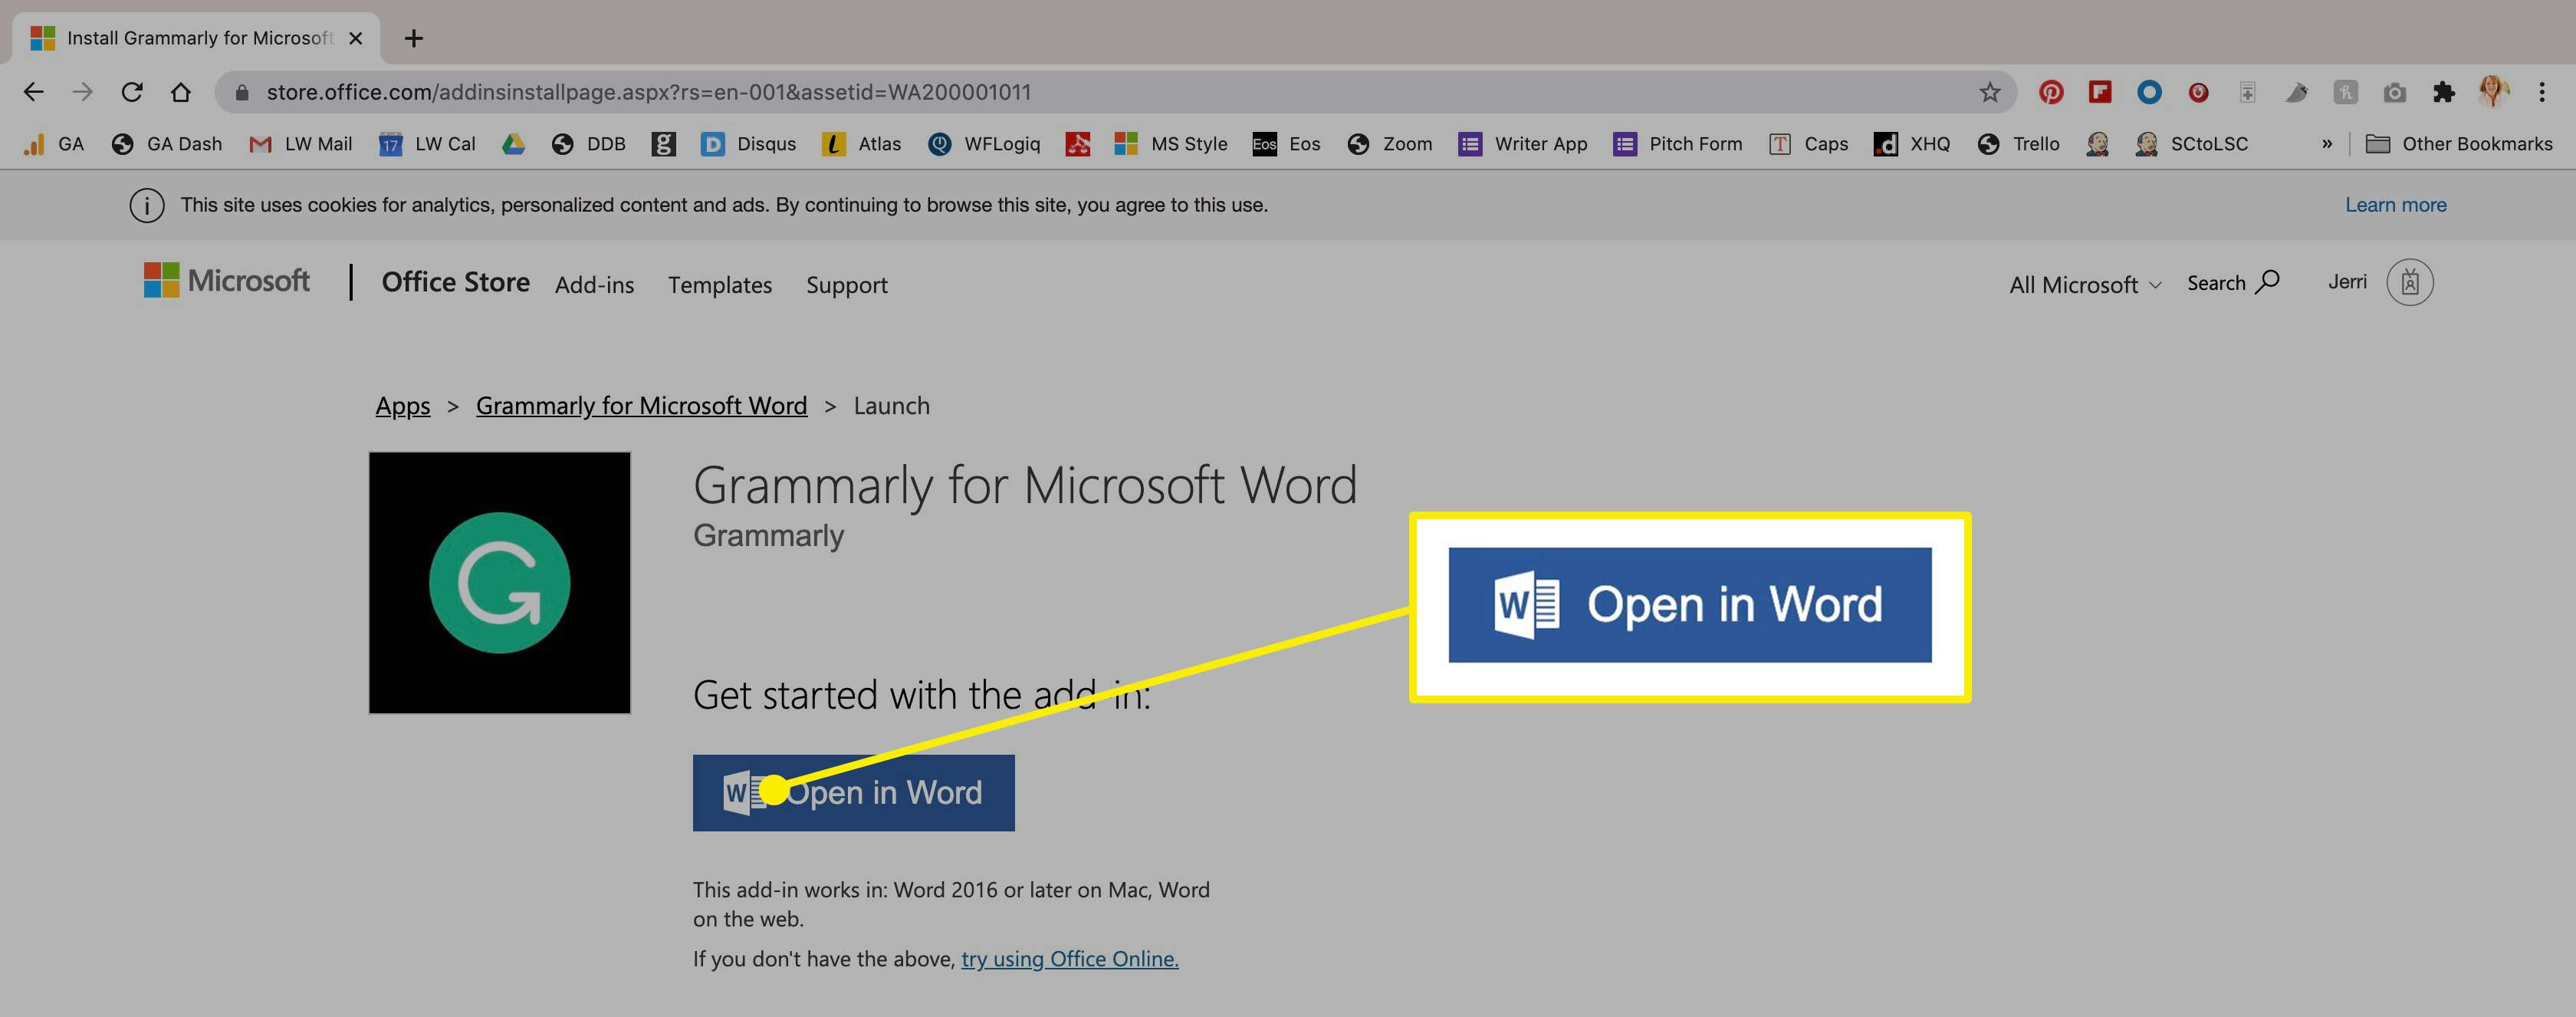 The open in Word option once Grammarly is installed.